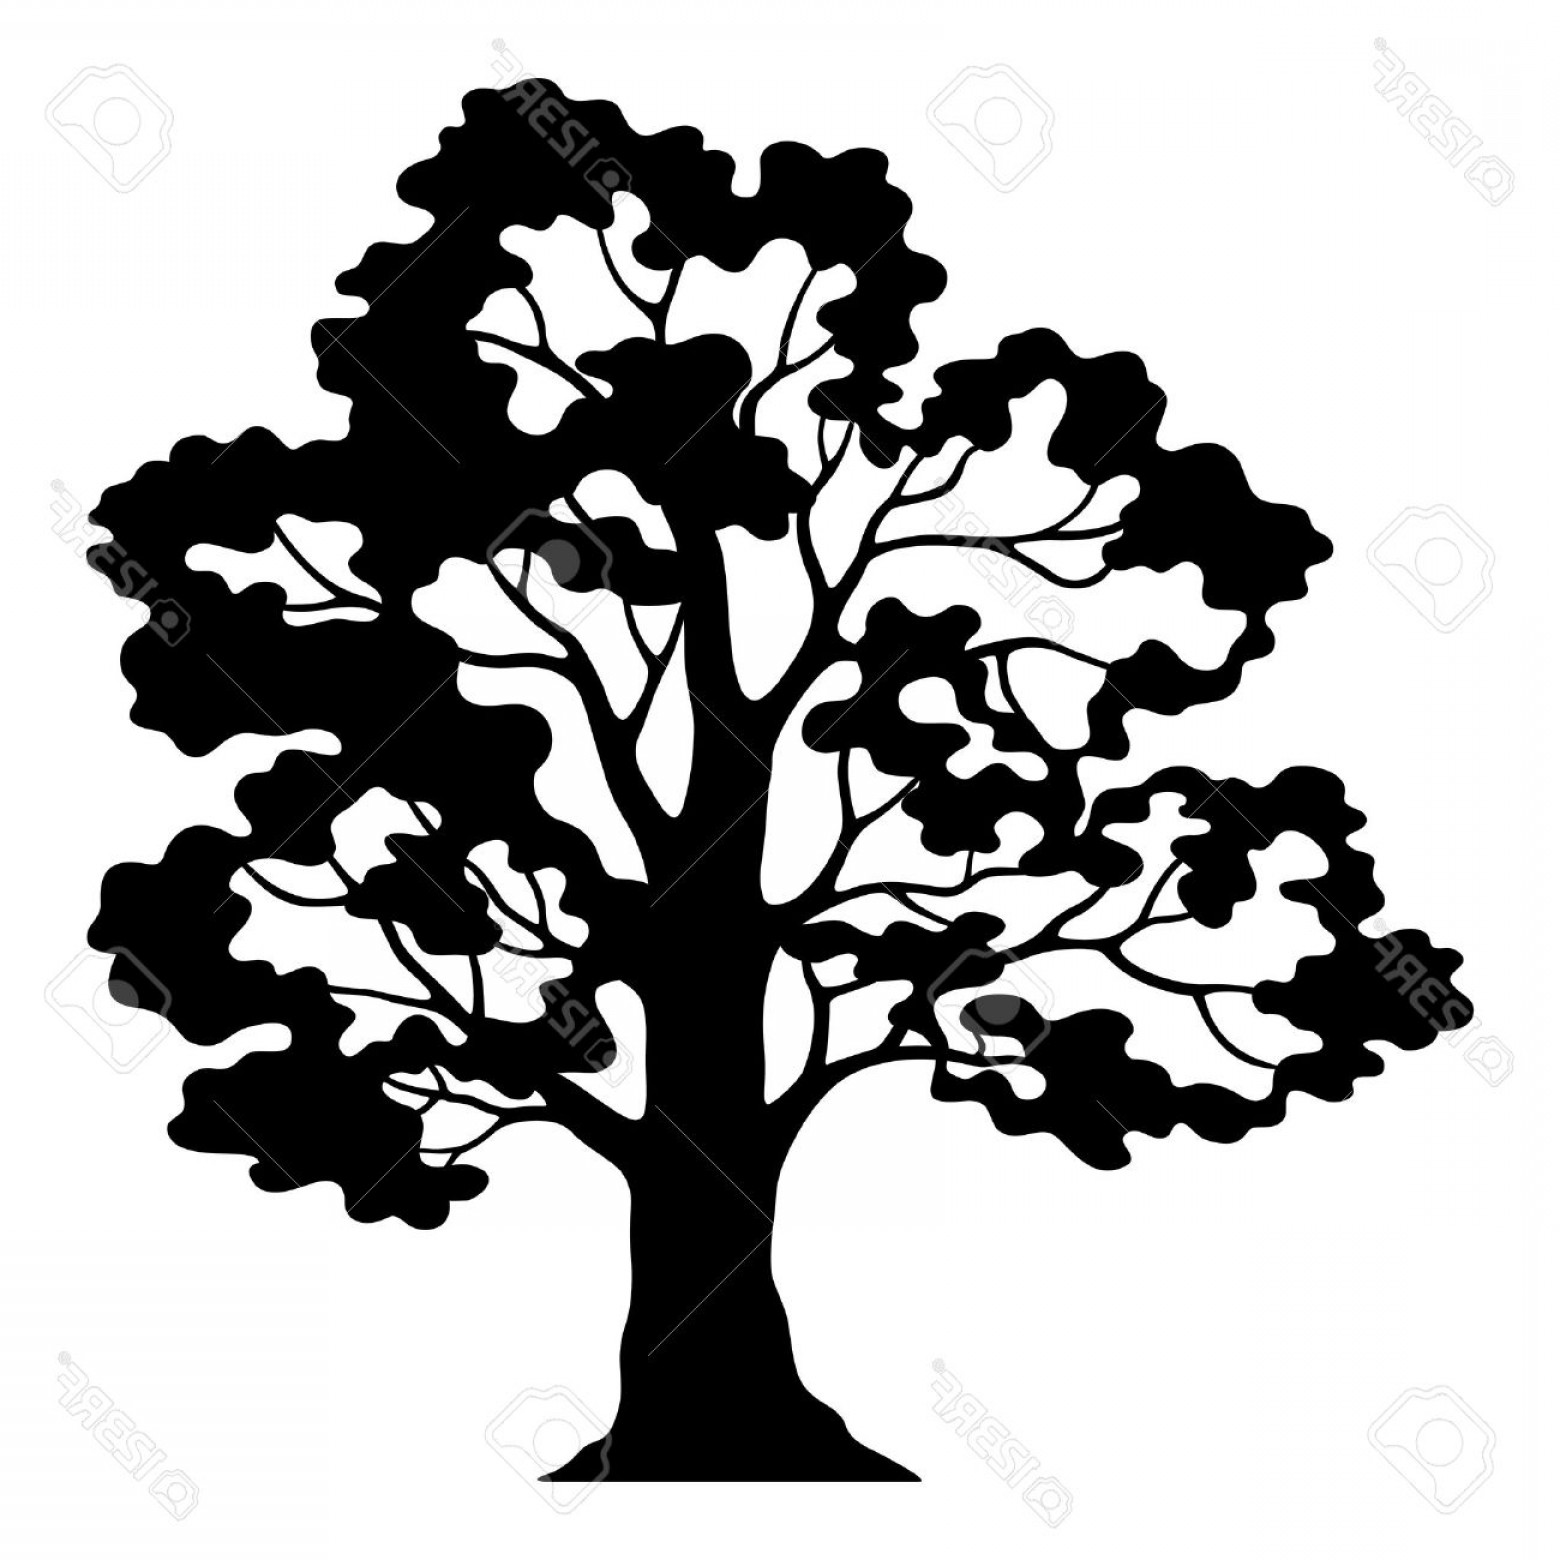 Photostock Vector Oak Tree Pictogram Black Silhouette And ...